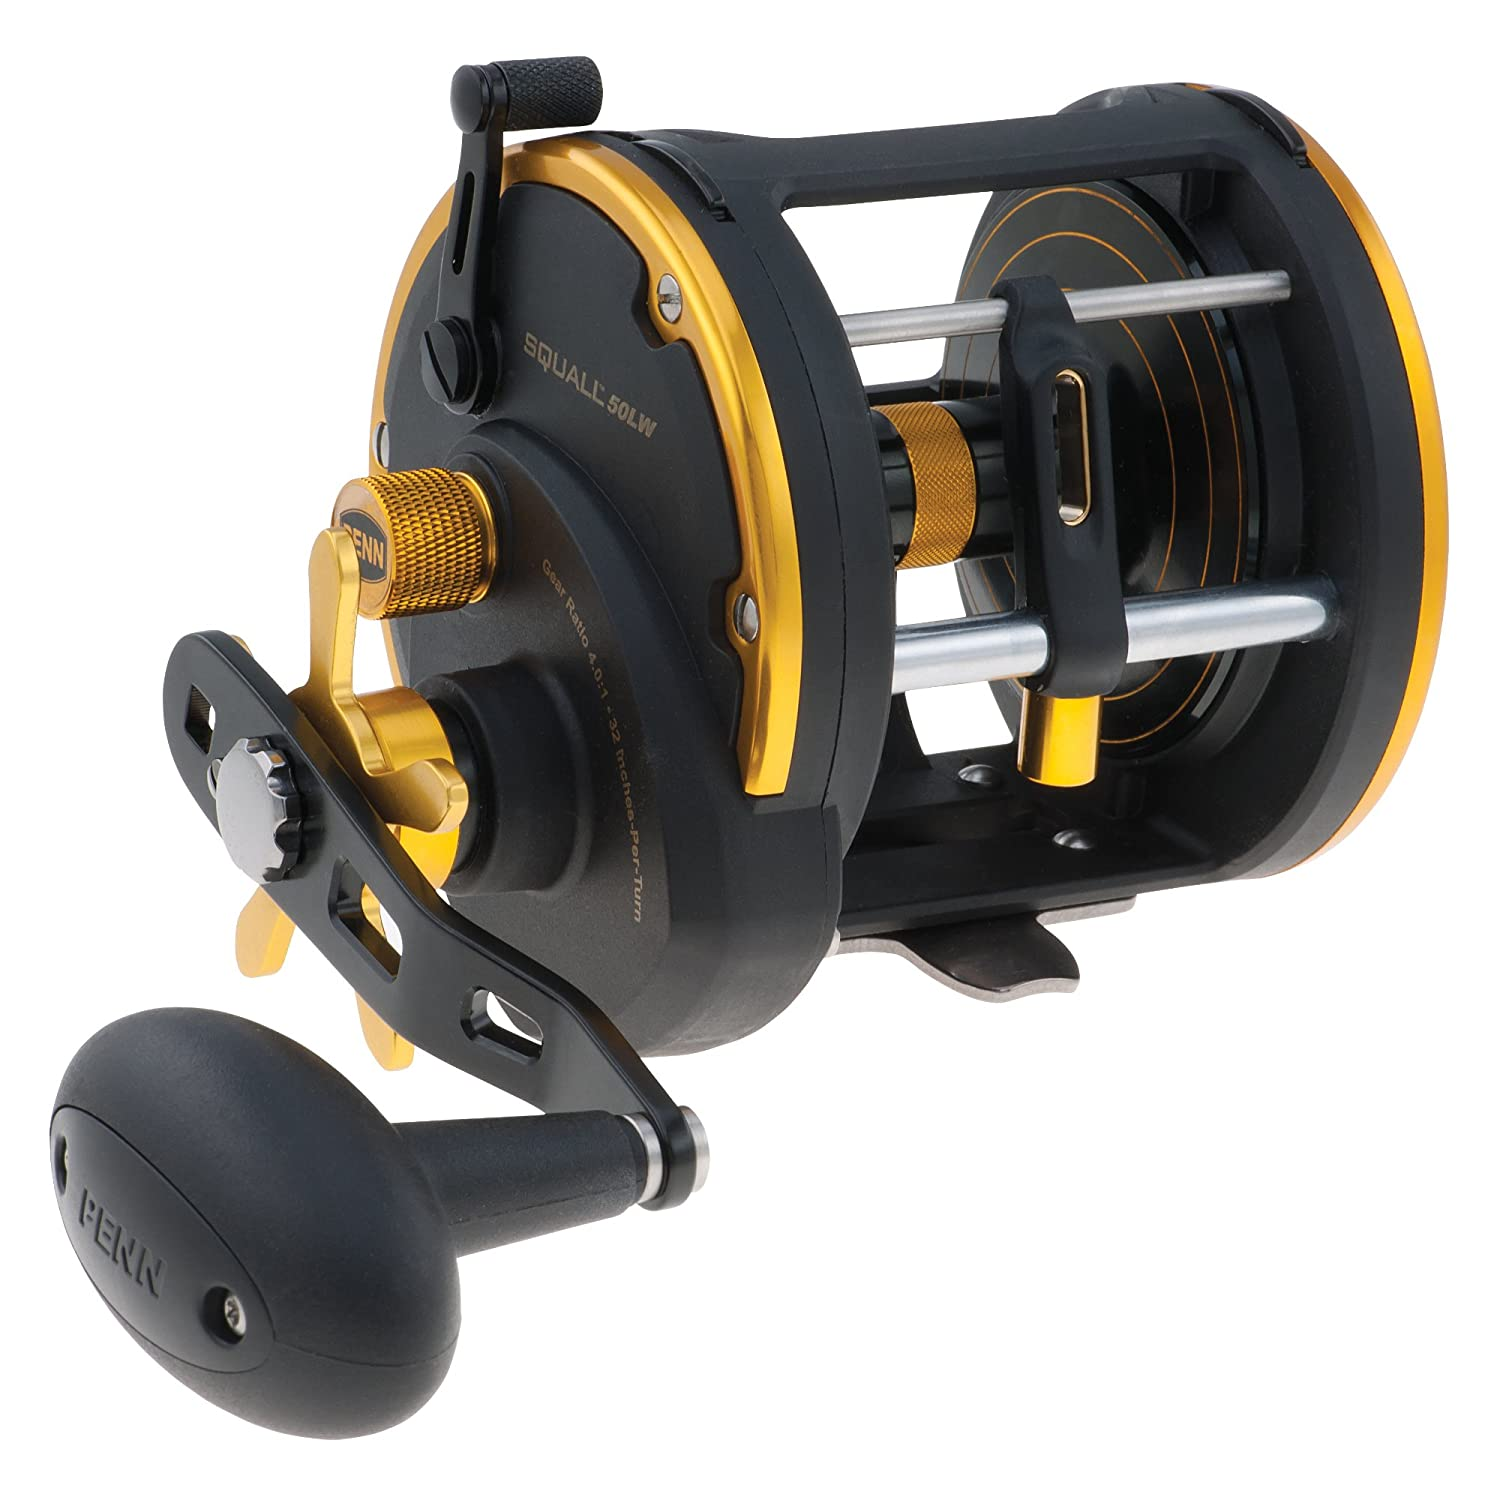 How to spool a conventional reel - Amazon Com Penn Squall Levelwind Trolling Fishing Reels Sports Outdoors